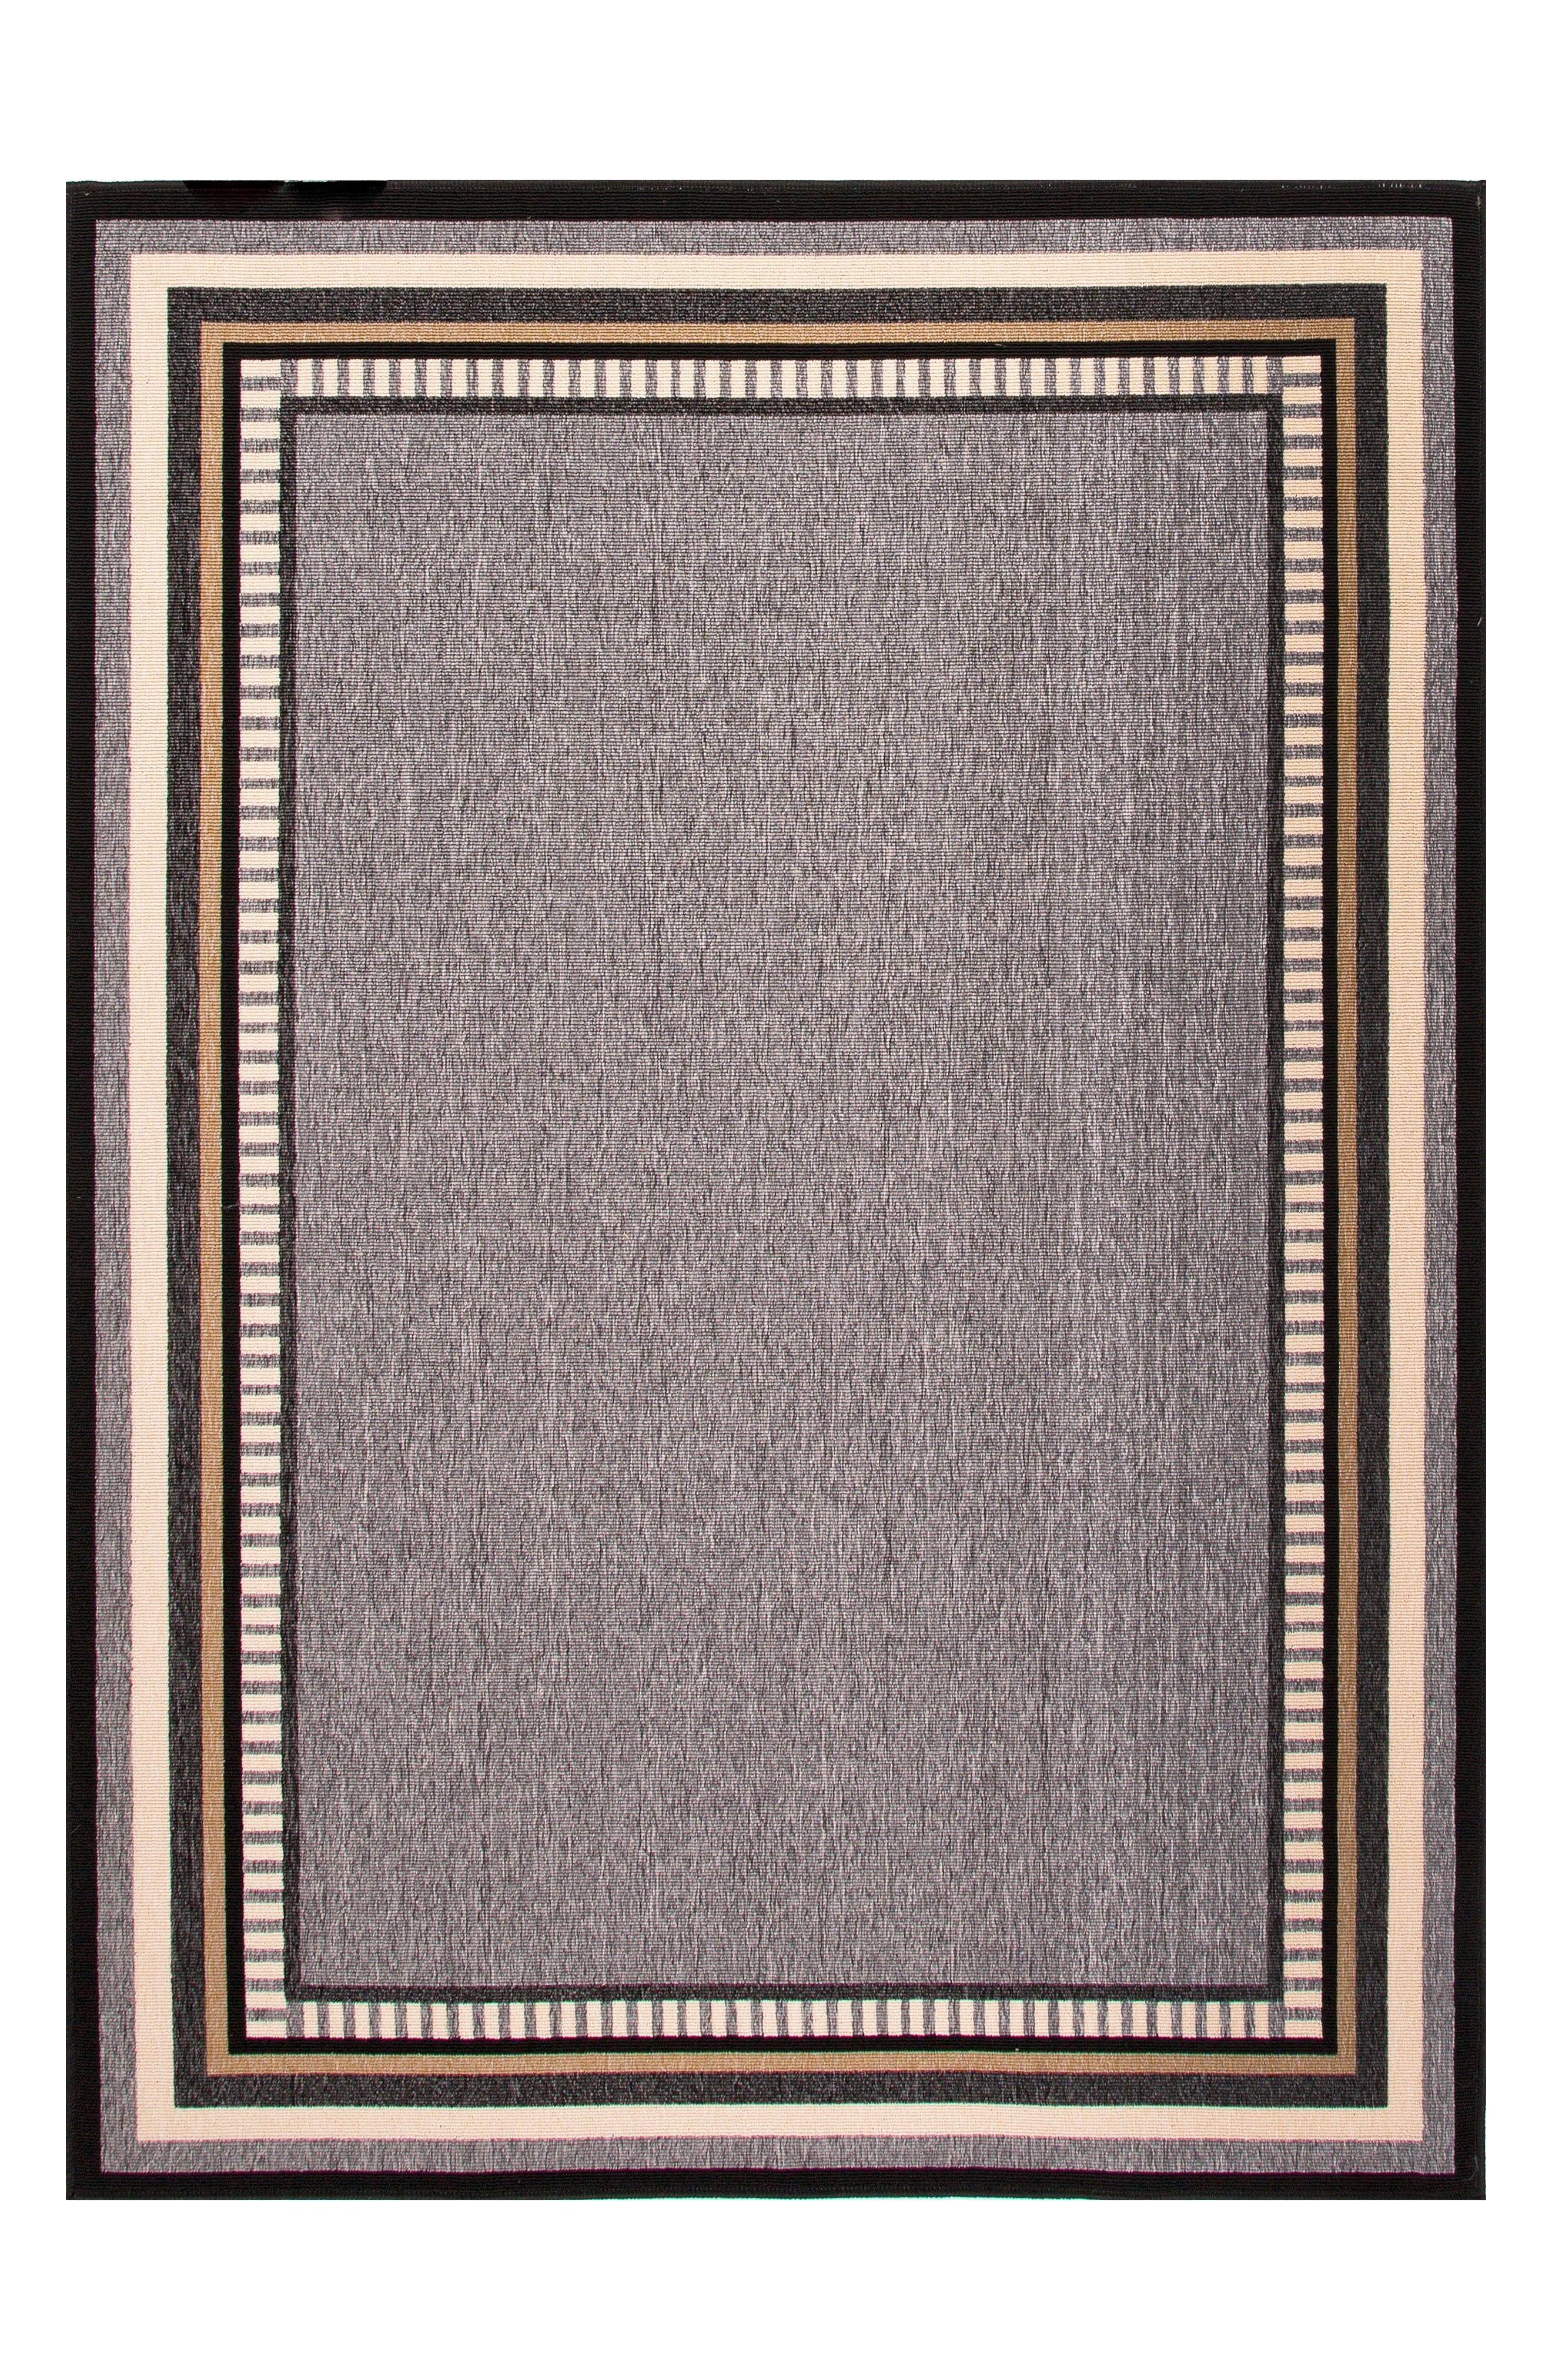 Alternate Image 1 Selected - Jaipur Border Monument Indoor/Outdoor Rug